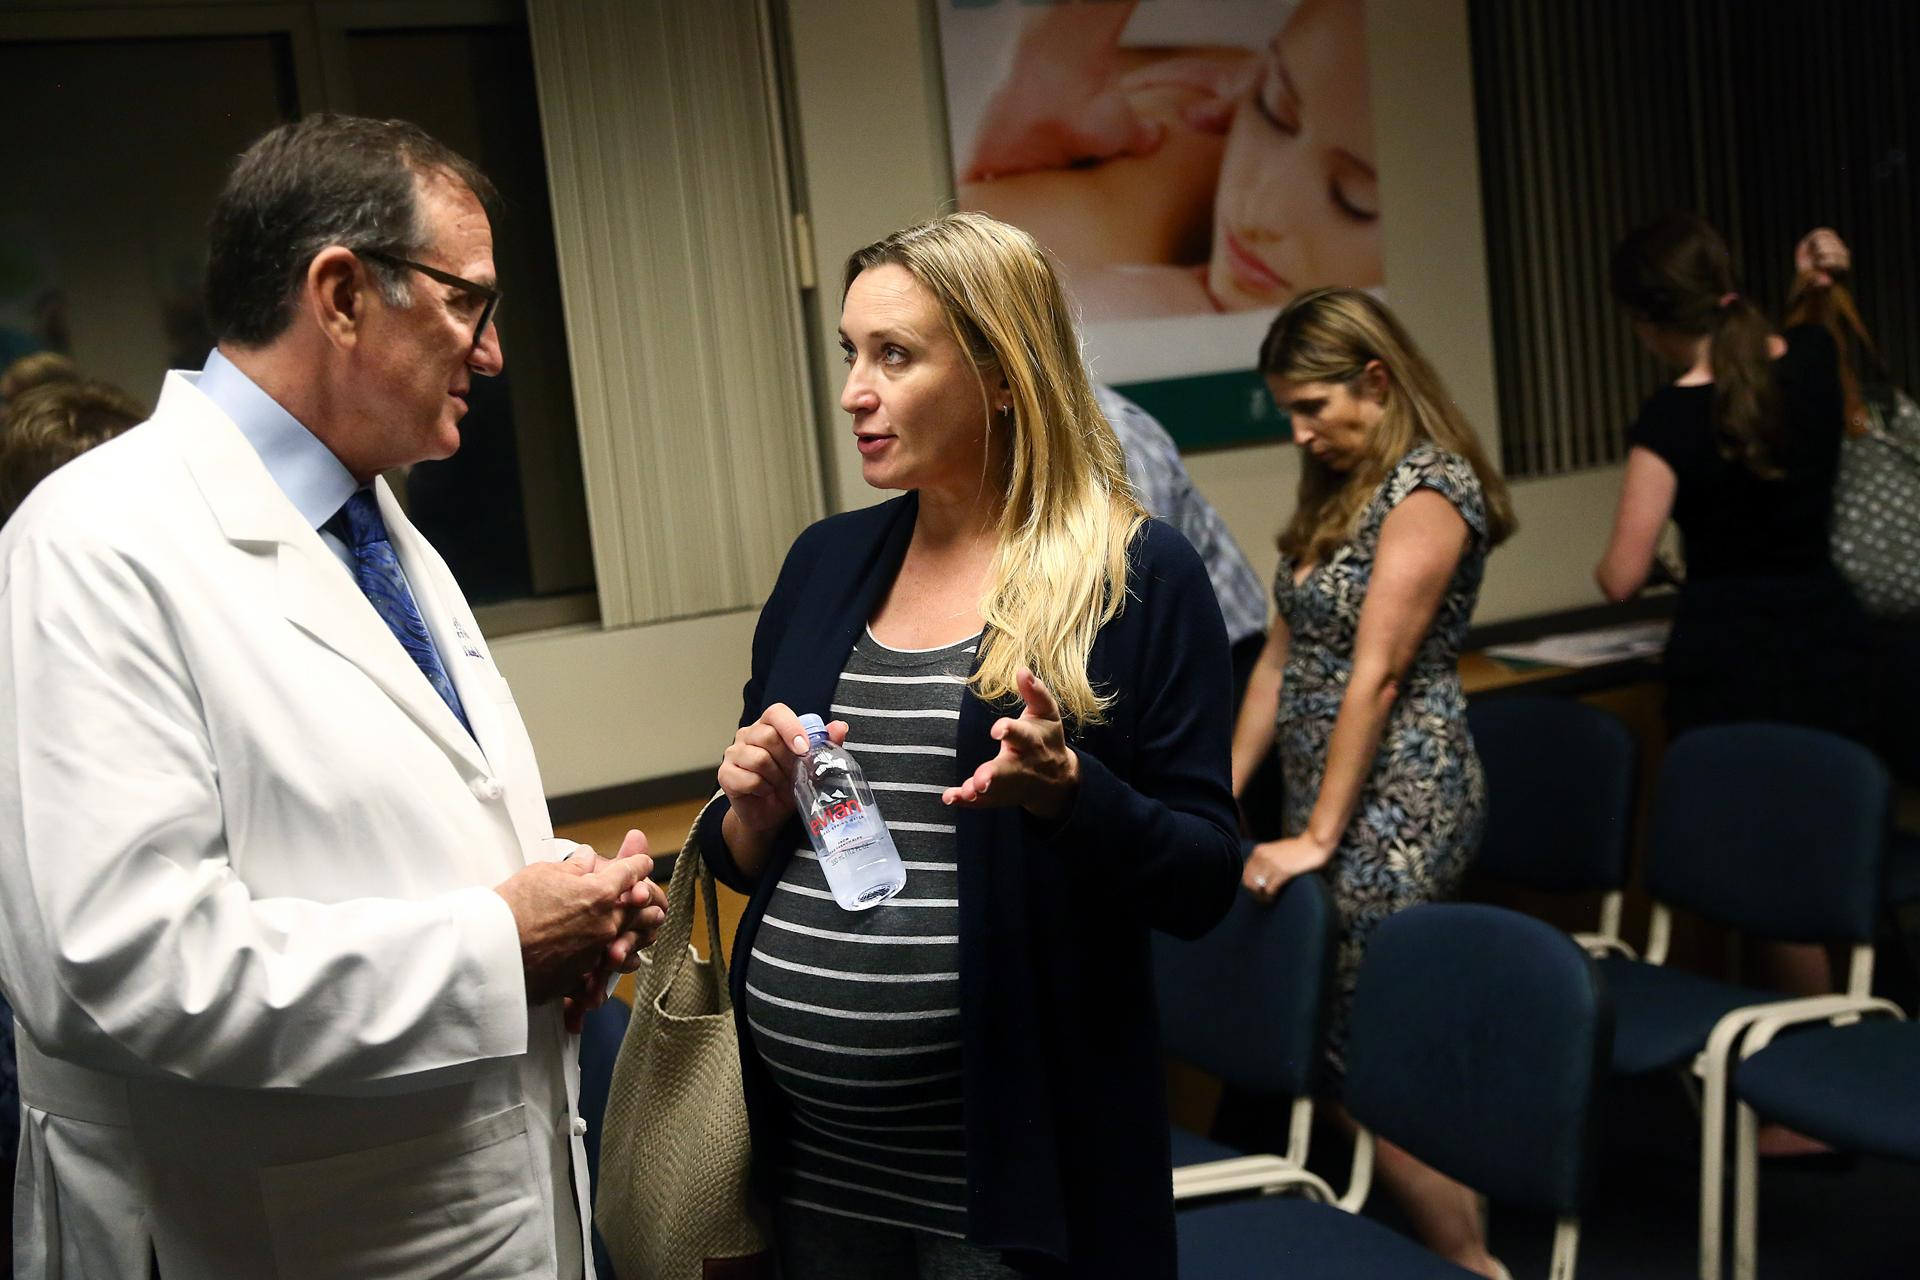 Dr. Michael Jacobs talked with Olena Shcheolrina after a forum about Zika and pregnancy at a Florida hospital.